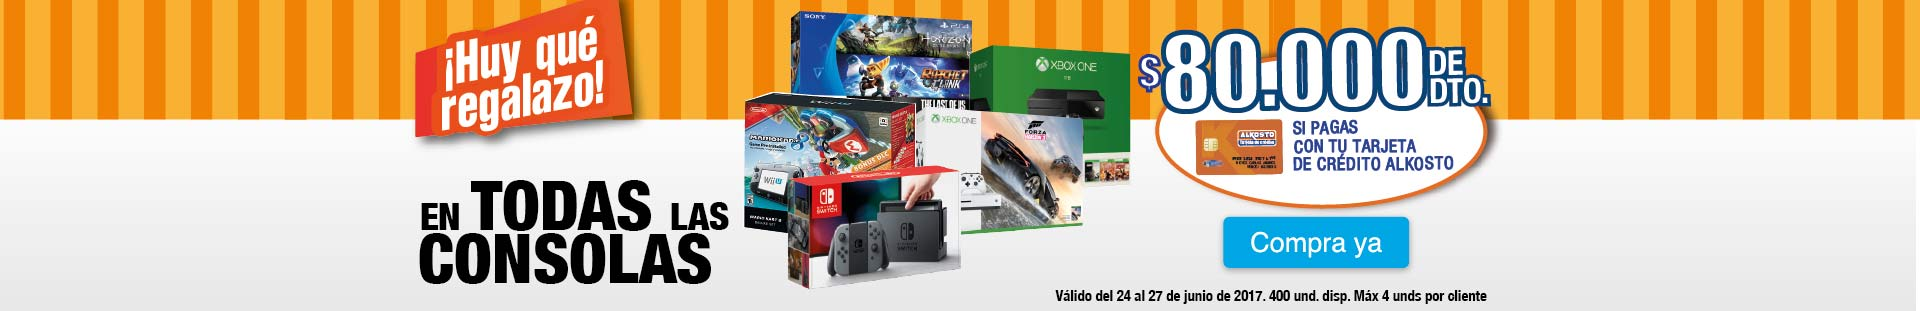 CAT AK-KT-Videojuegos-todasconsolas-jun24